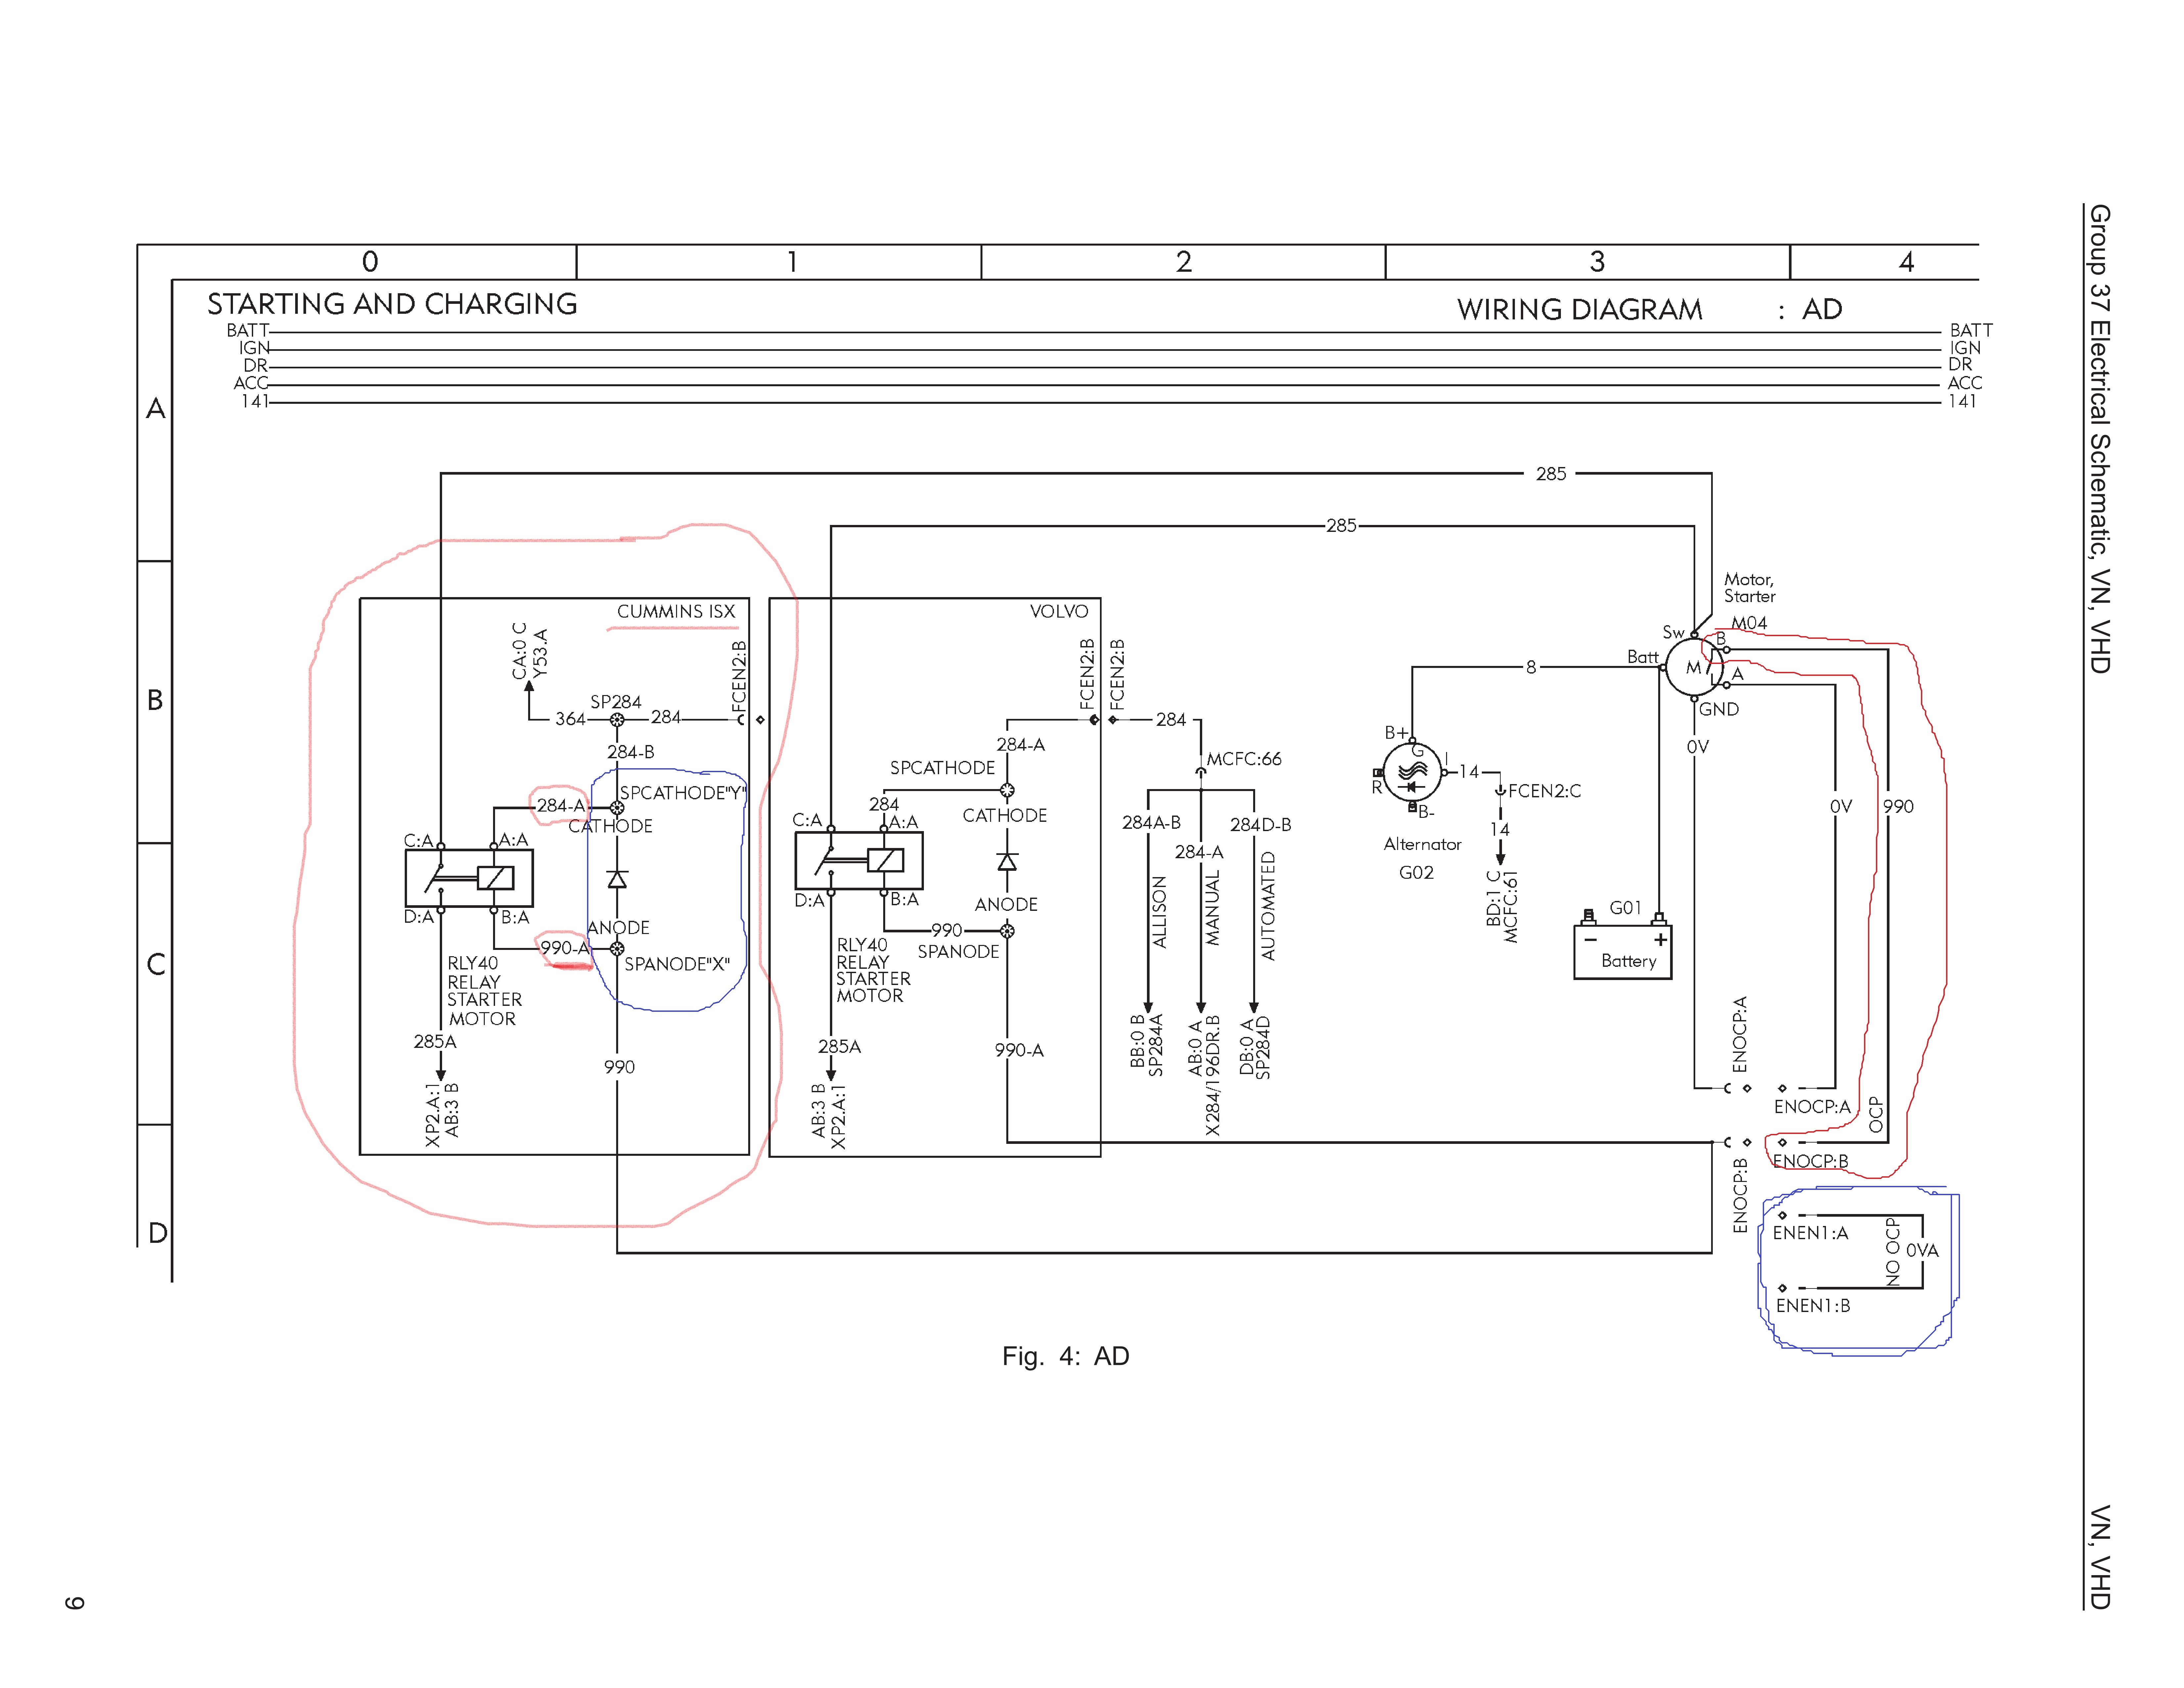 Electrical Schematic1.jpg